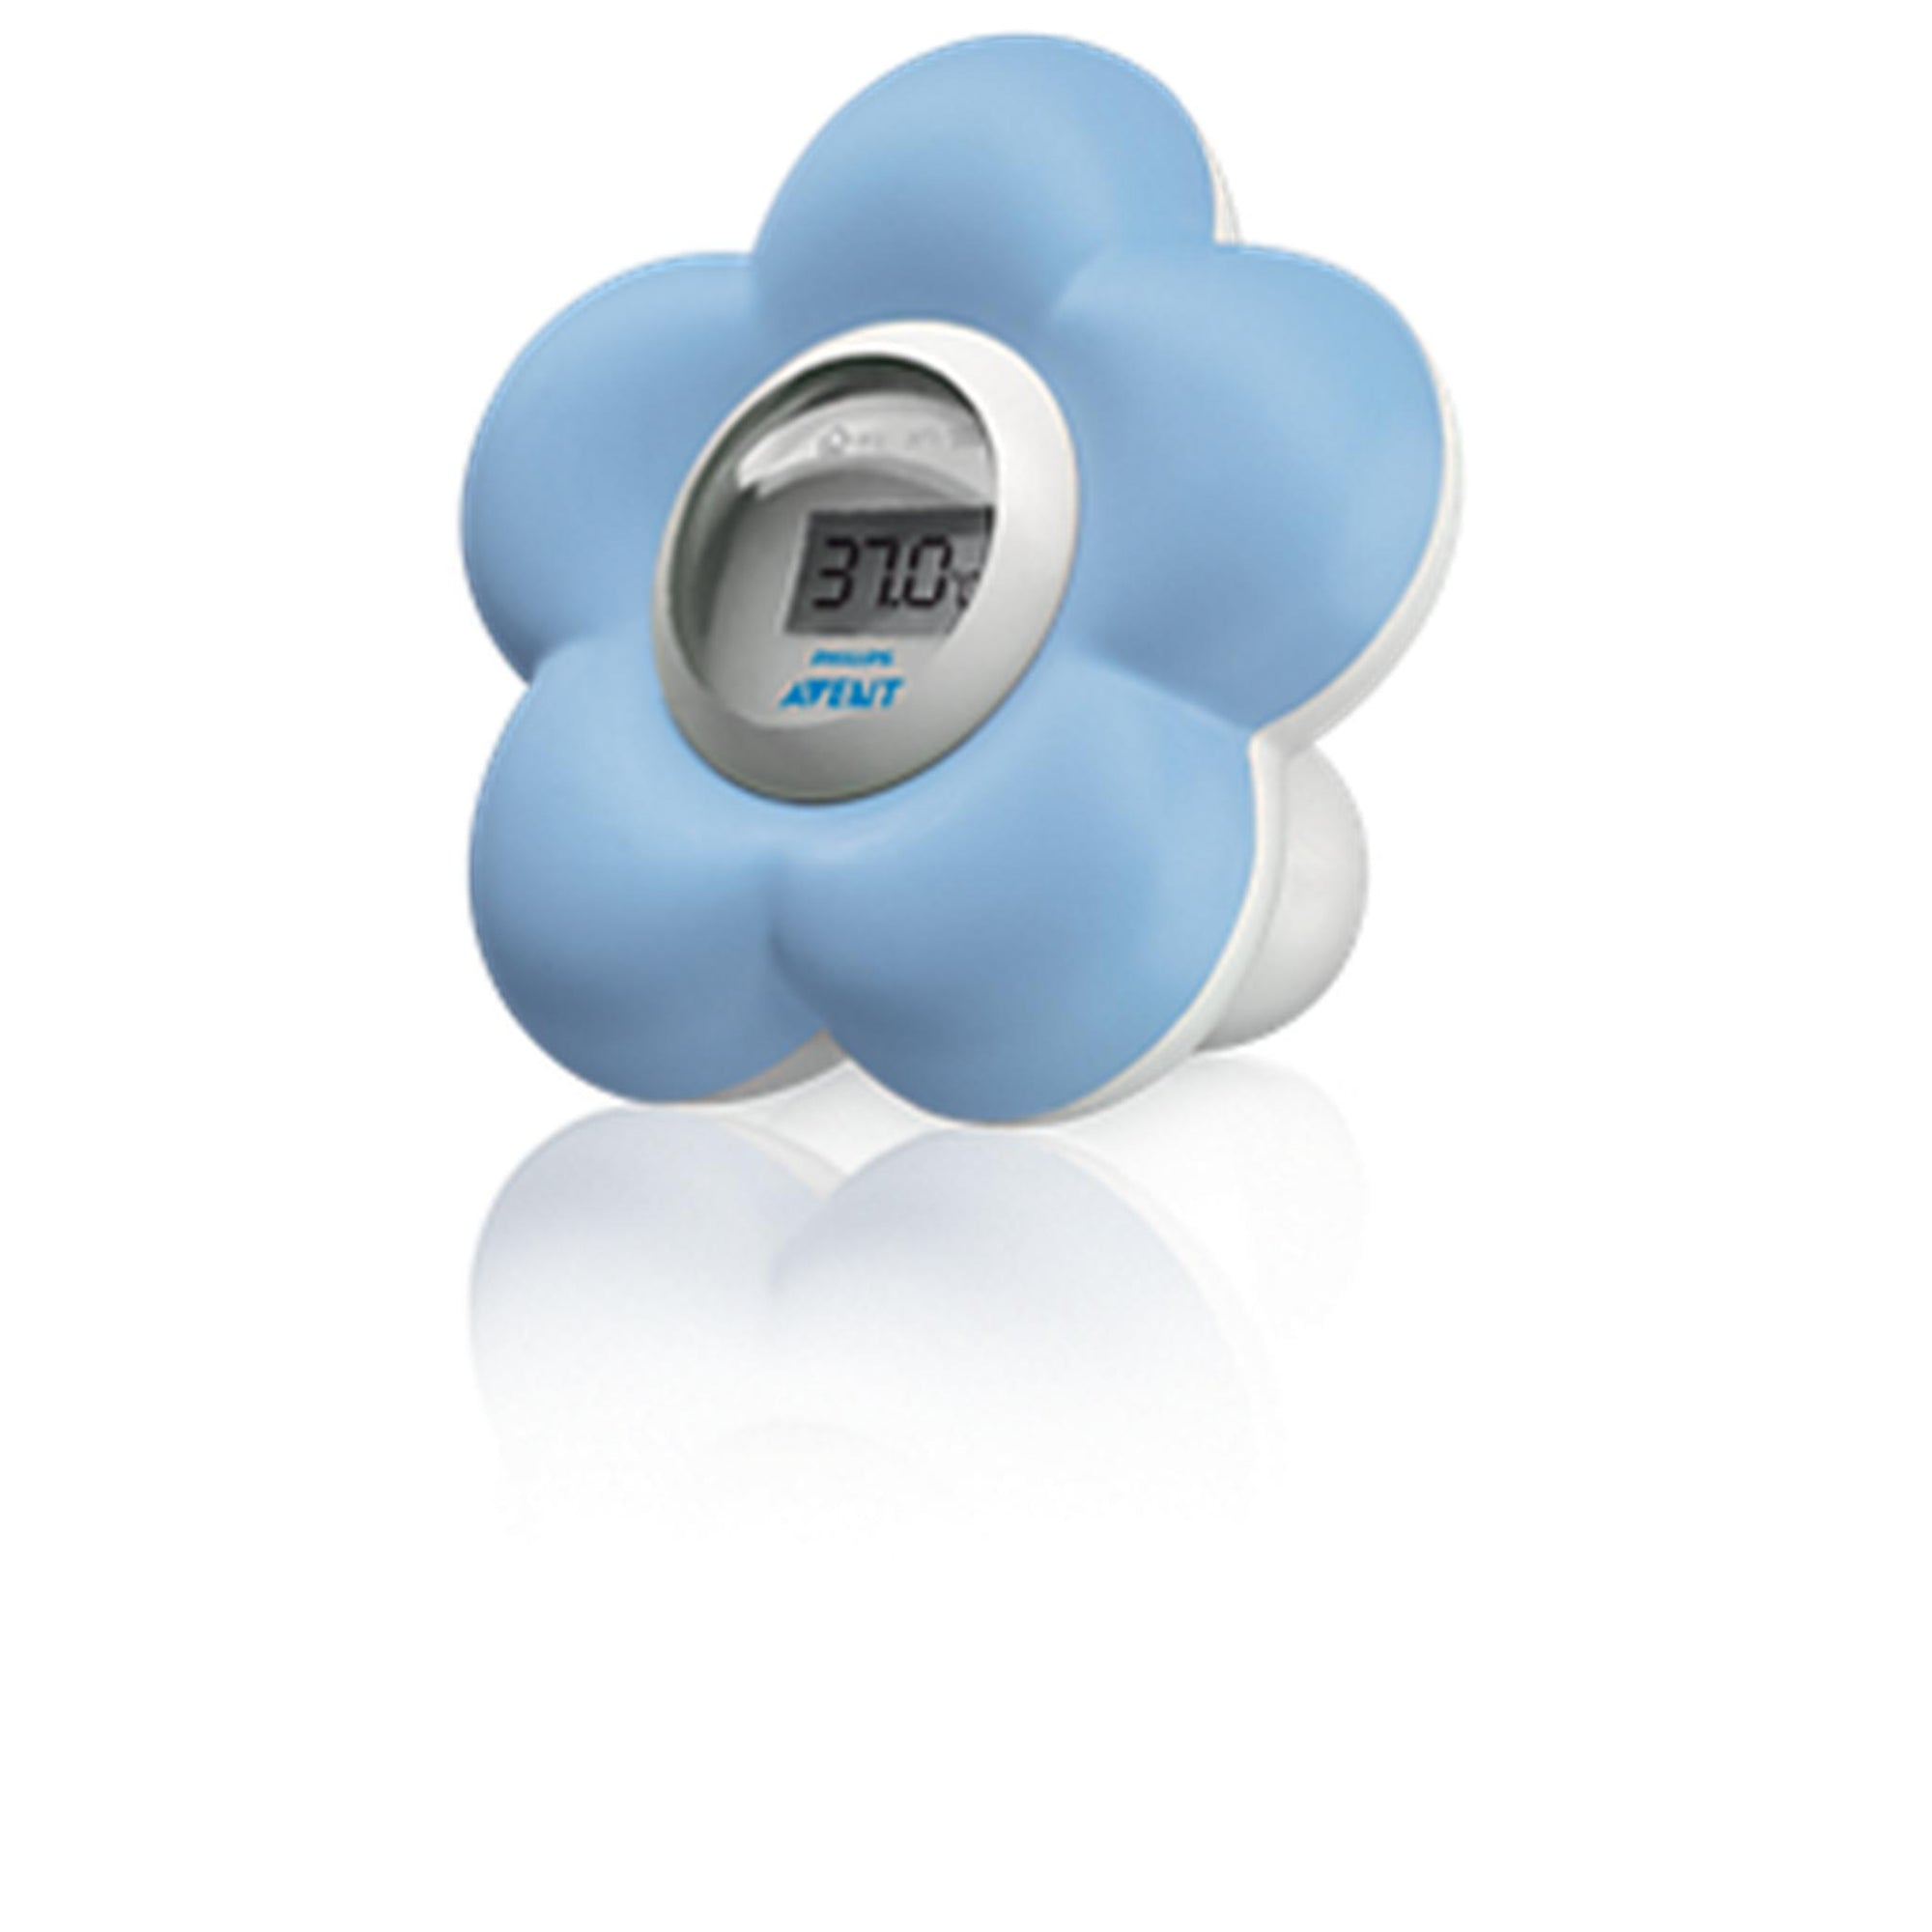 Avent Digital Bath/Bed Thermometer - Blue-Thermometer-Mother and Baby Shop Kenya's #1 Online Baby Shop